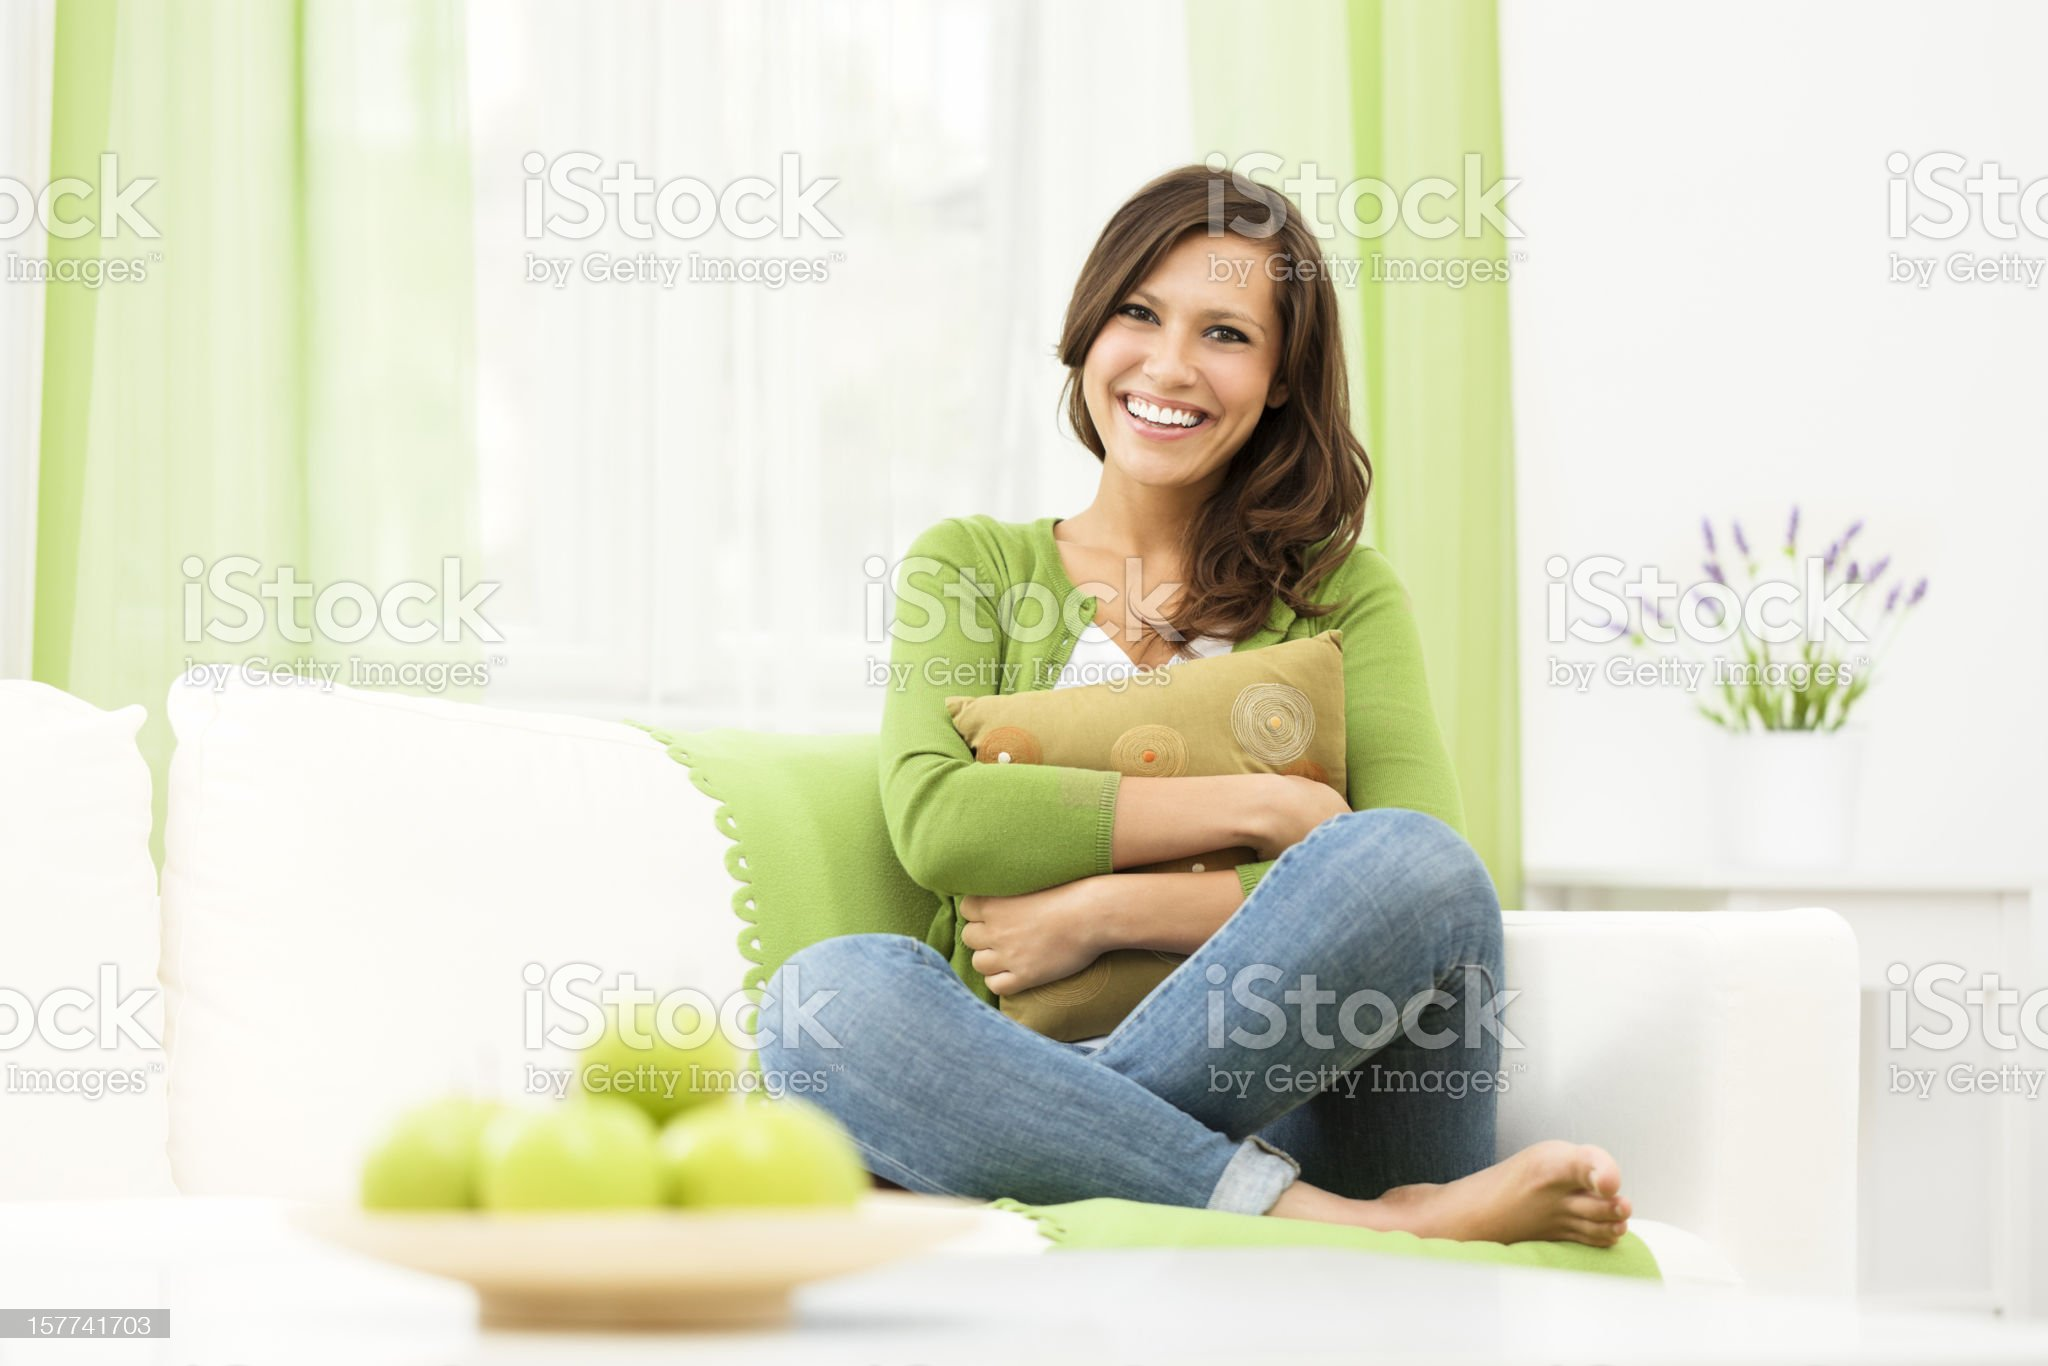 Smiling woman sitting confidently on a couch at home royalty-free stock photo